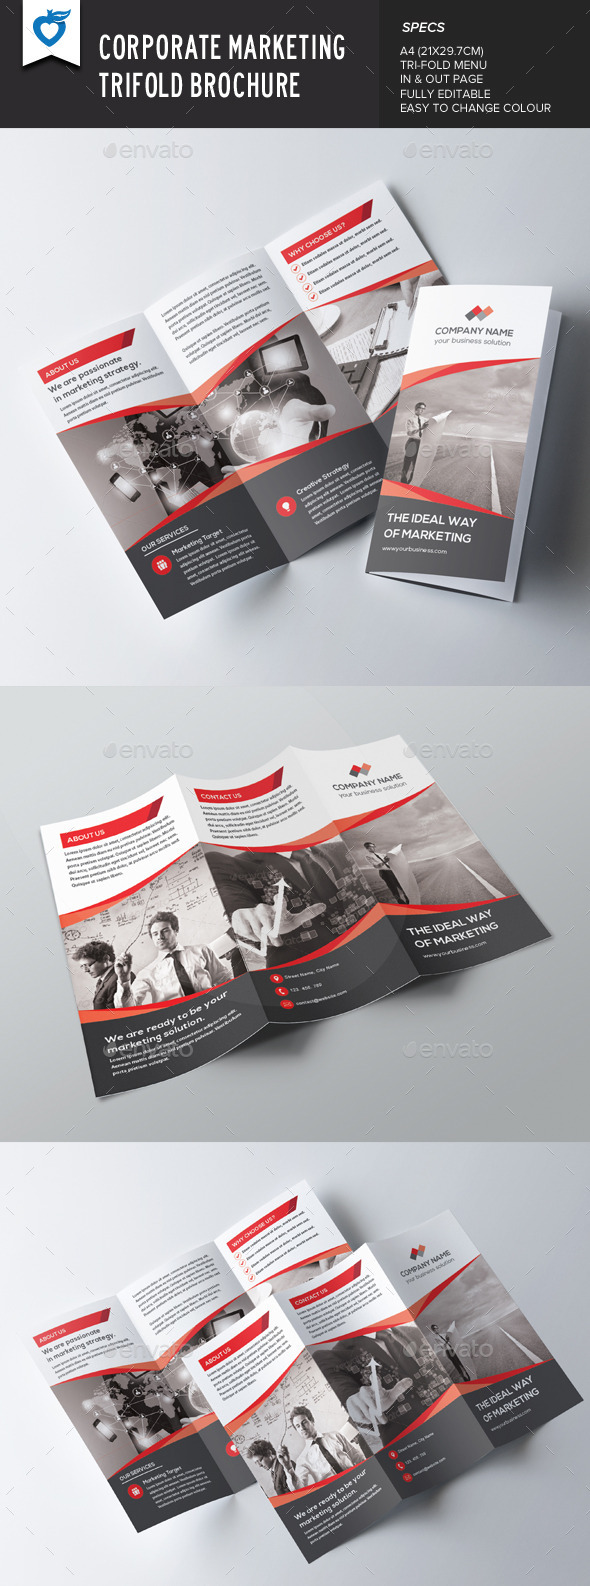 GraphicRiver Corporate Marketing Trifold Brochure 9514338